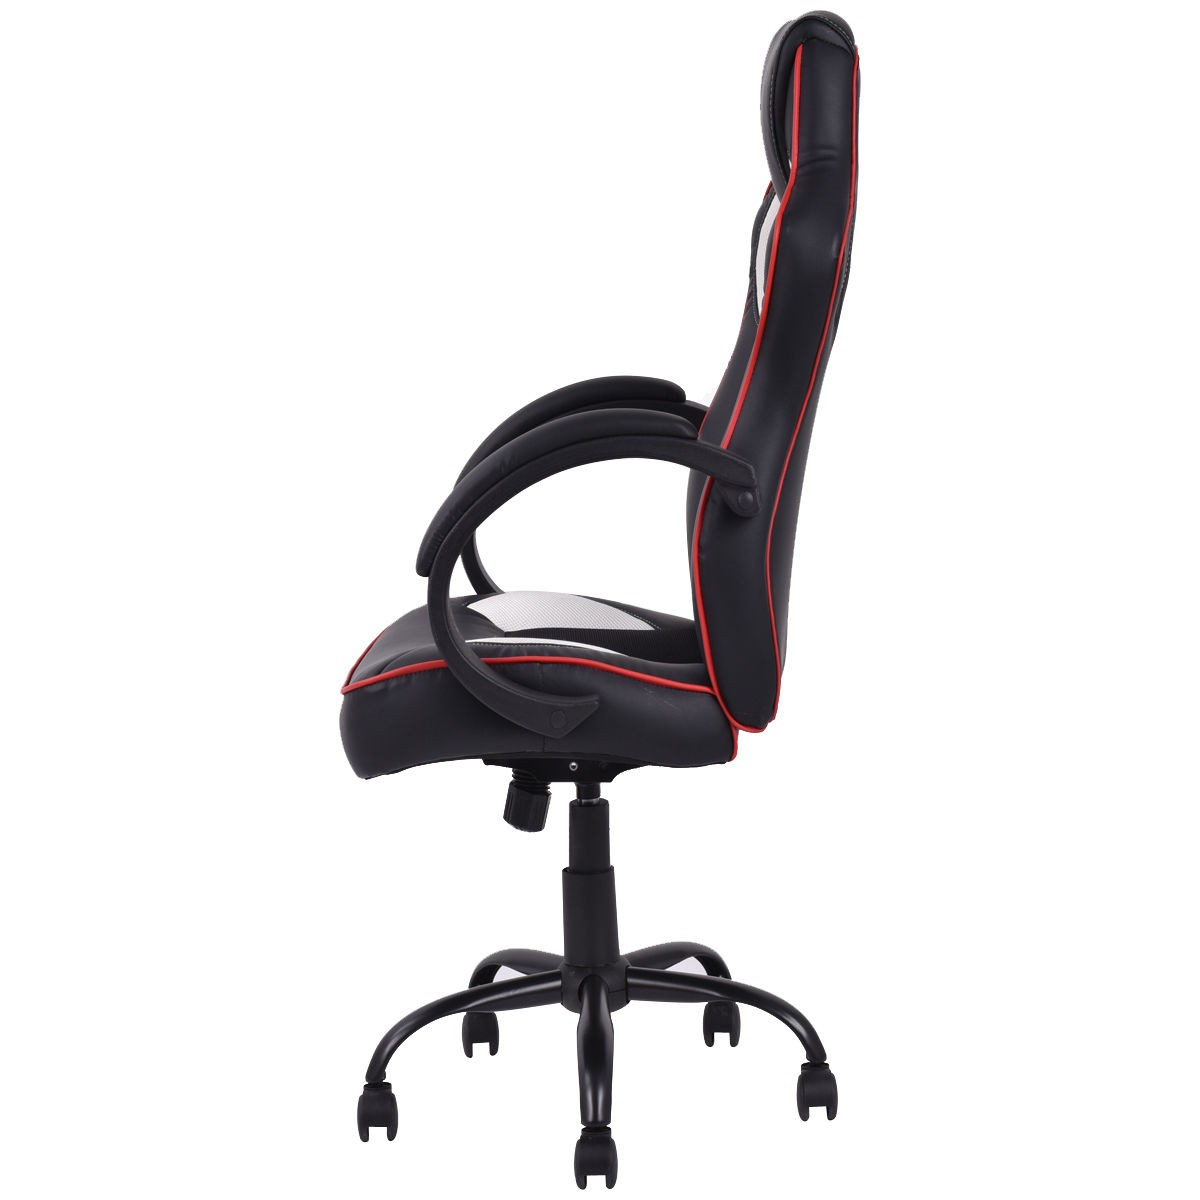 Race Car Racing Style Bucket Seat fice Gaming Chair Desk